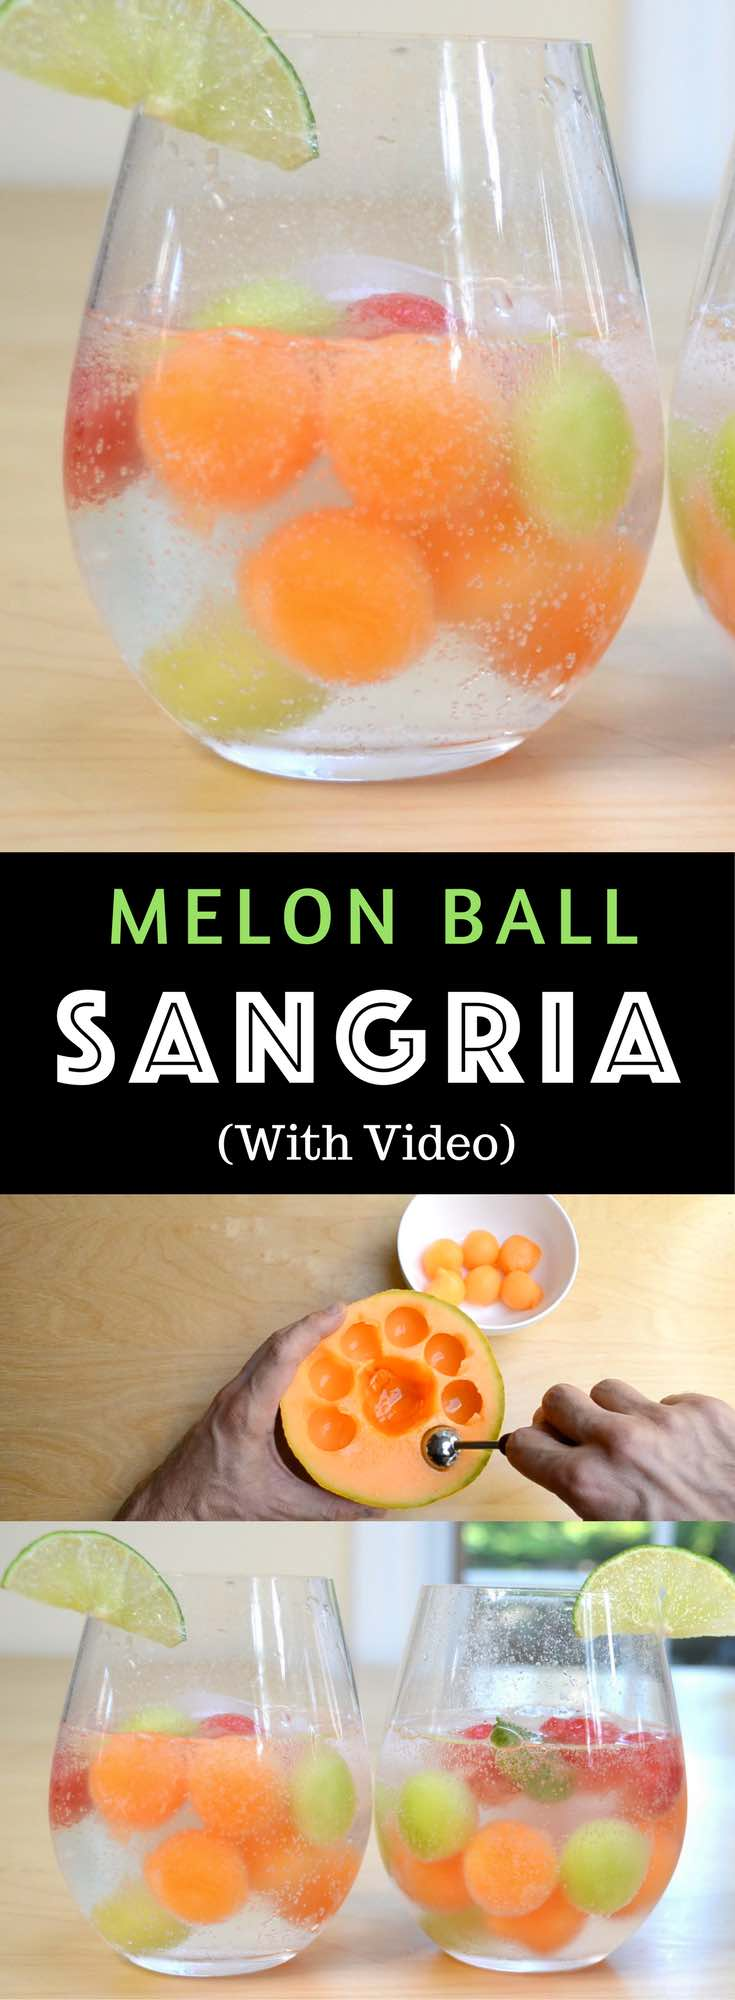 Easy Melon Ball Sangria – Refreshing and delicious melon ball sangria, the most beautiful sangria recipe! All you need is only a few ingredients: watermelon, cantaloupe and honeydew melons, moscato wine, sugar, lime, and sparkling water. Easy drinks recipe. Video recipe. | Tipbuzz.com